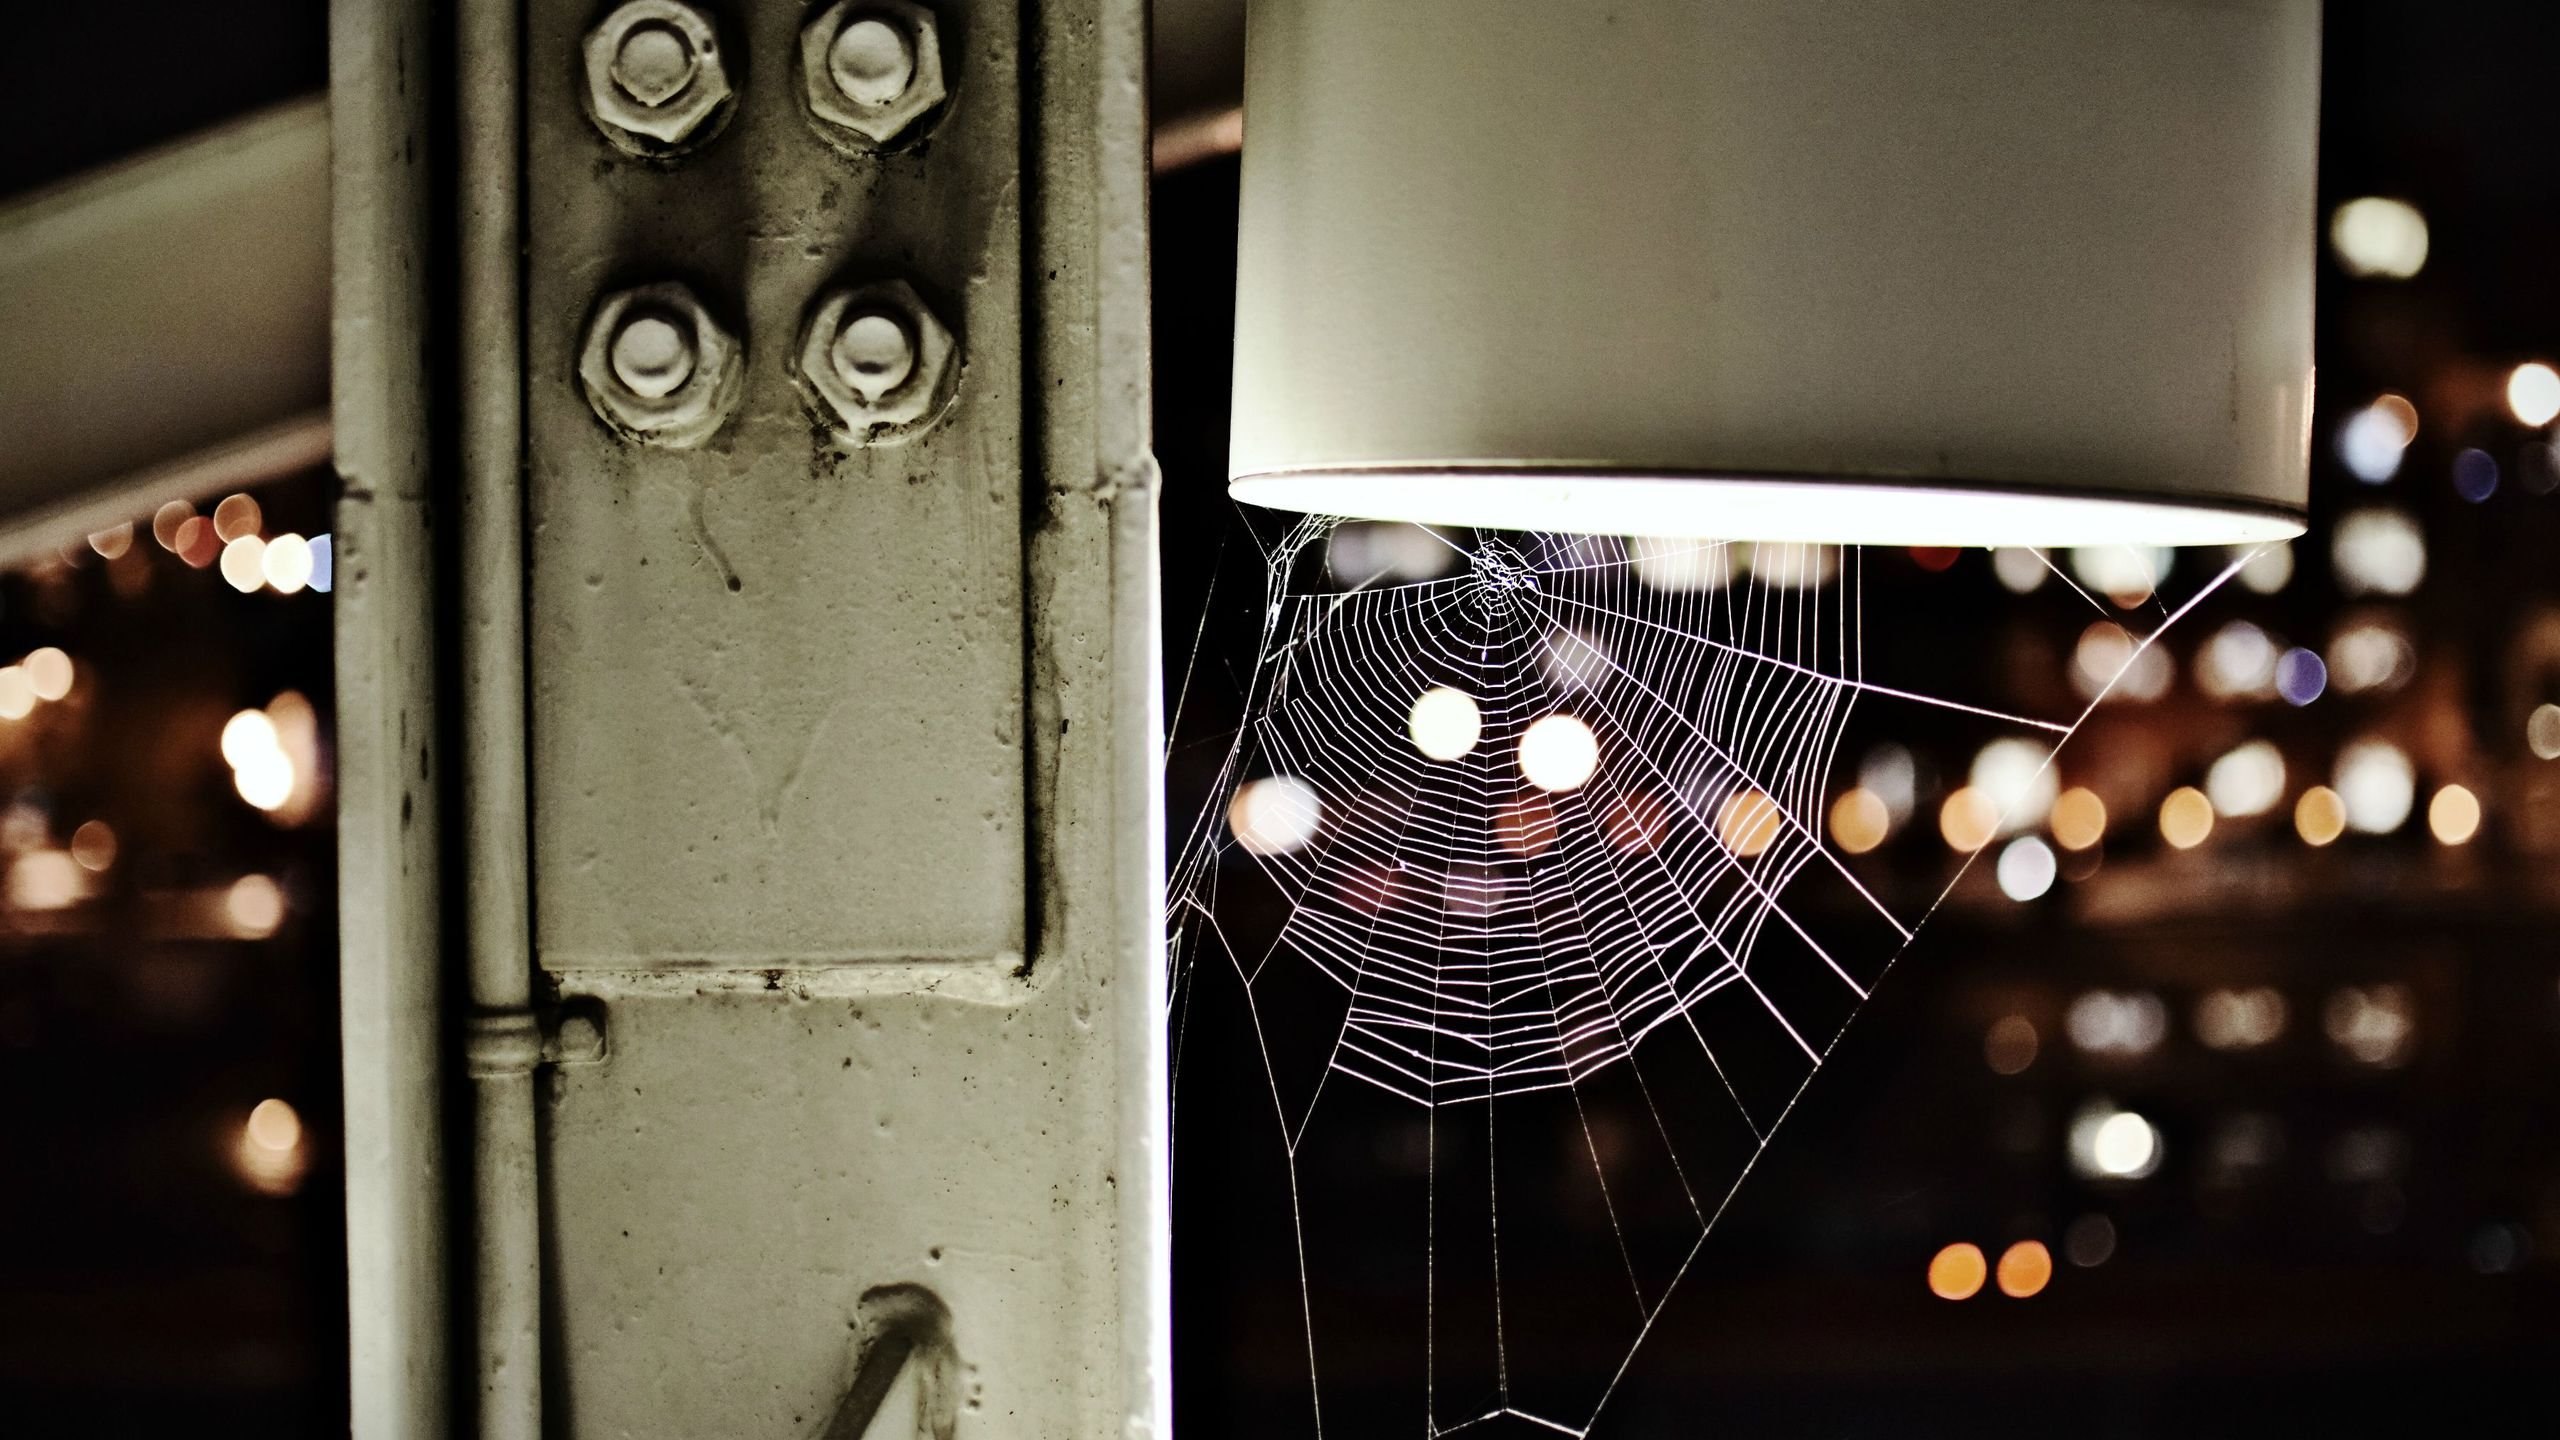 Abandoned Spiderweb wallpaper